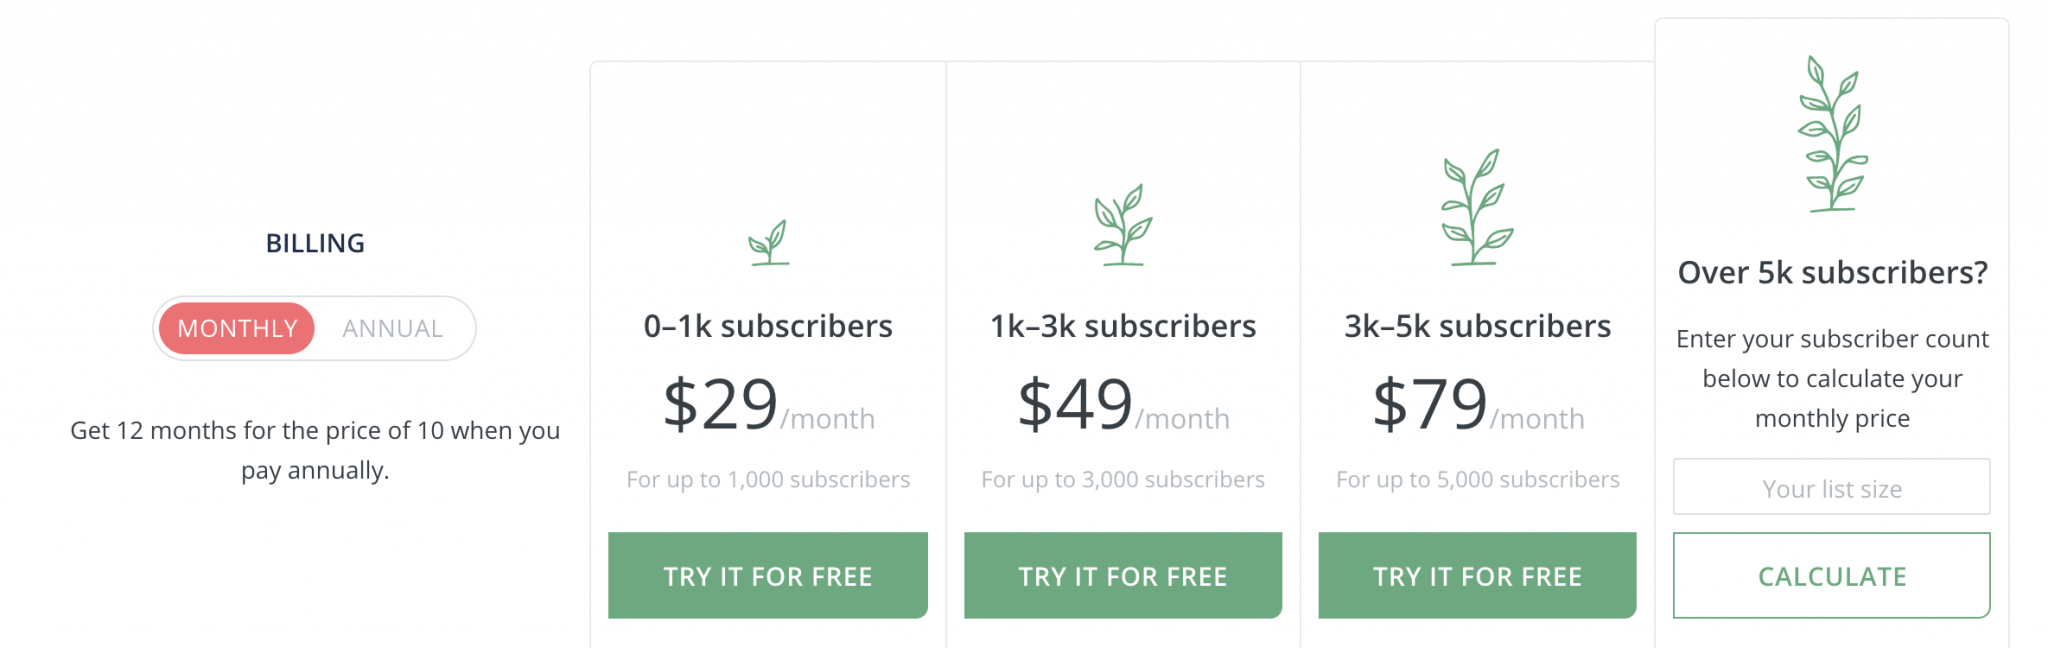 Coupon Code For Annual Subscription Email Marketing May 2020